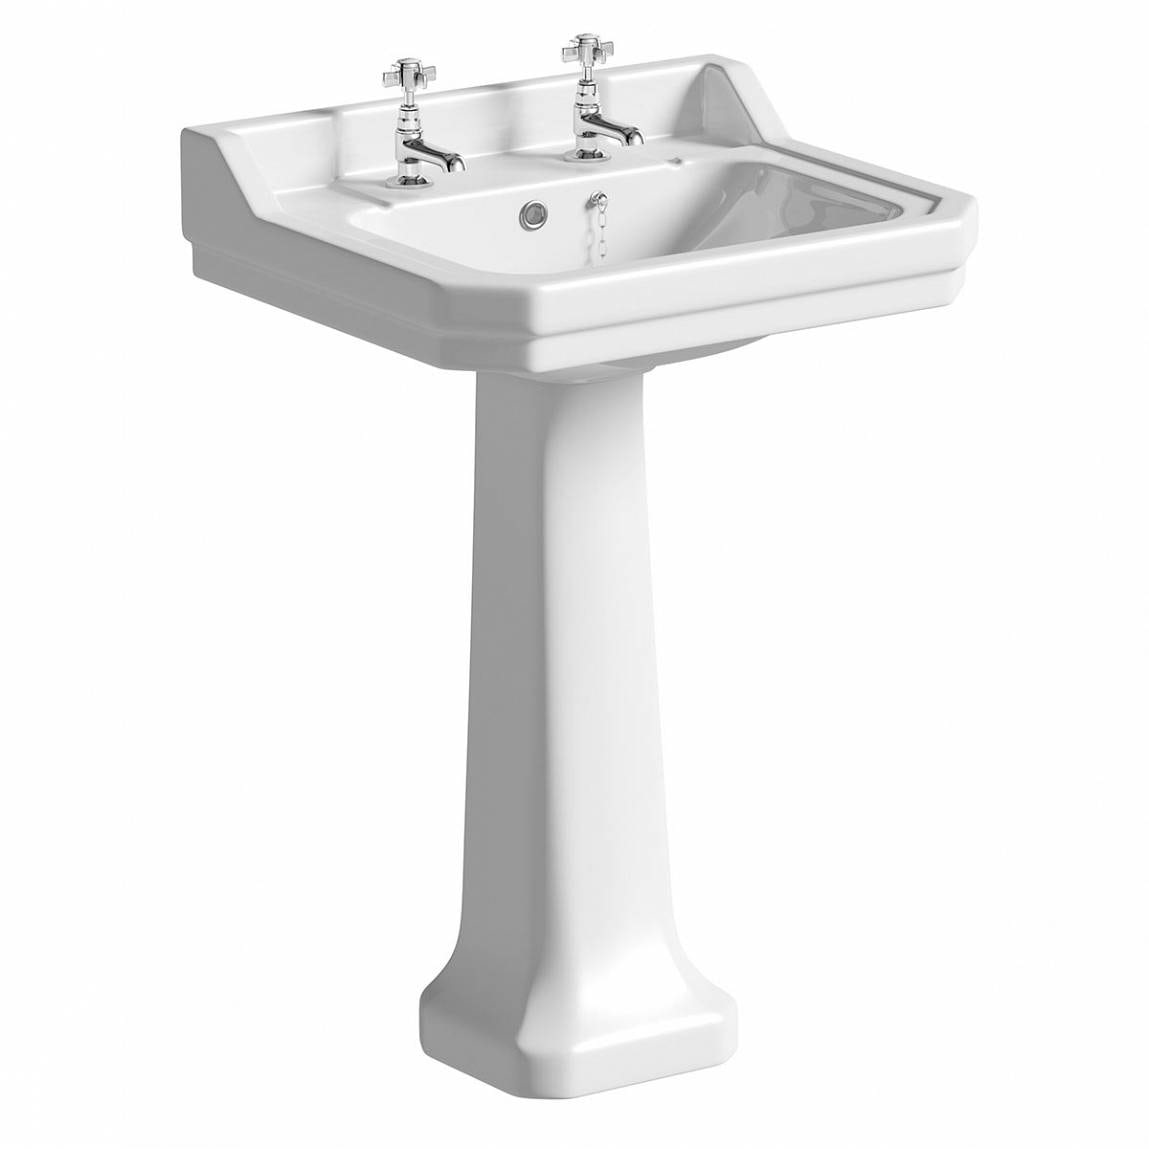 The Bath Co. Camberley 2 tap hole full pedestal basin 560mm with waste